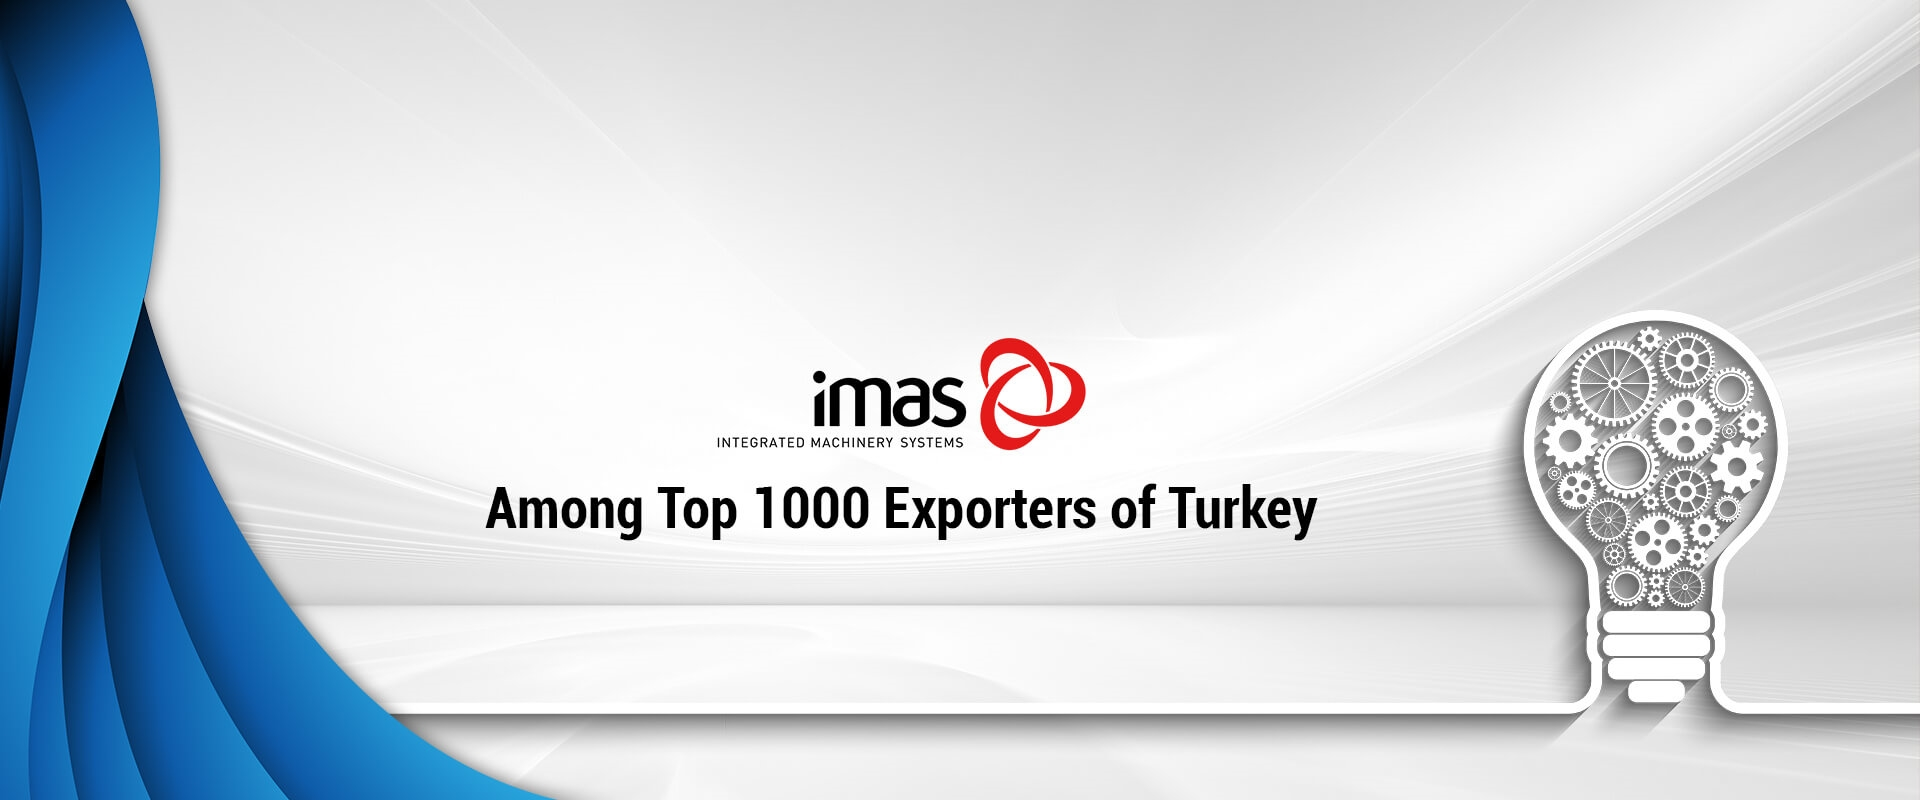 Cuteral Among top 1000 exporters of Turkey